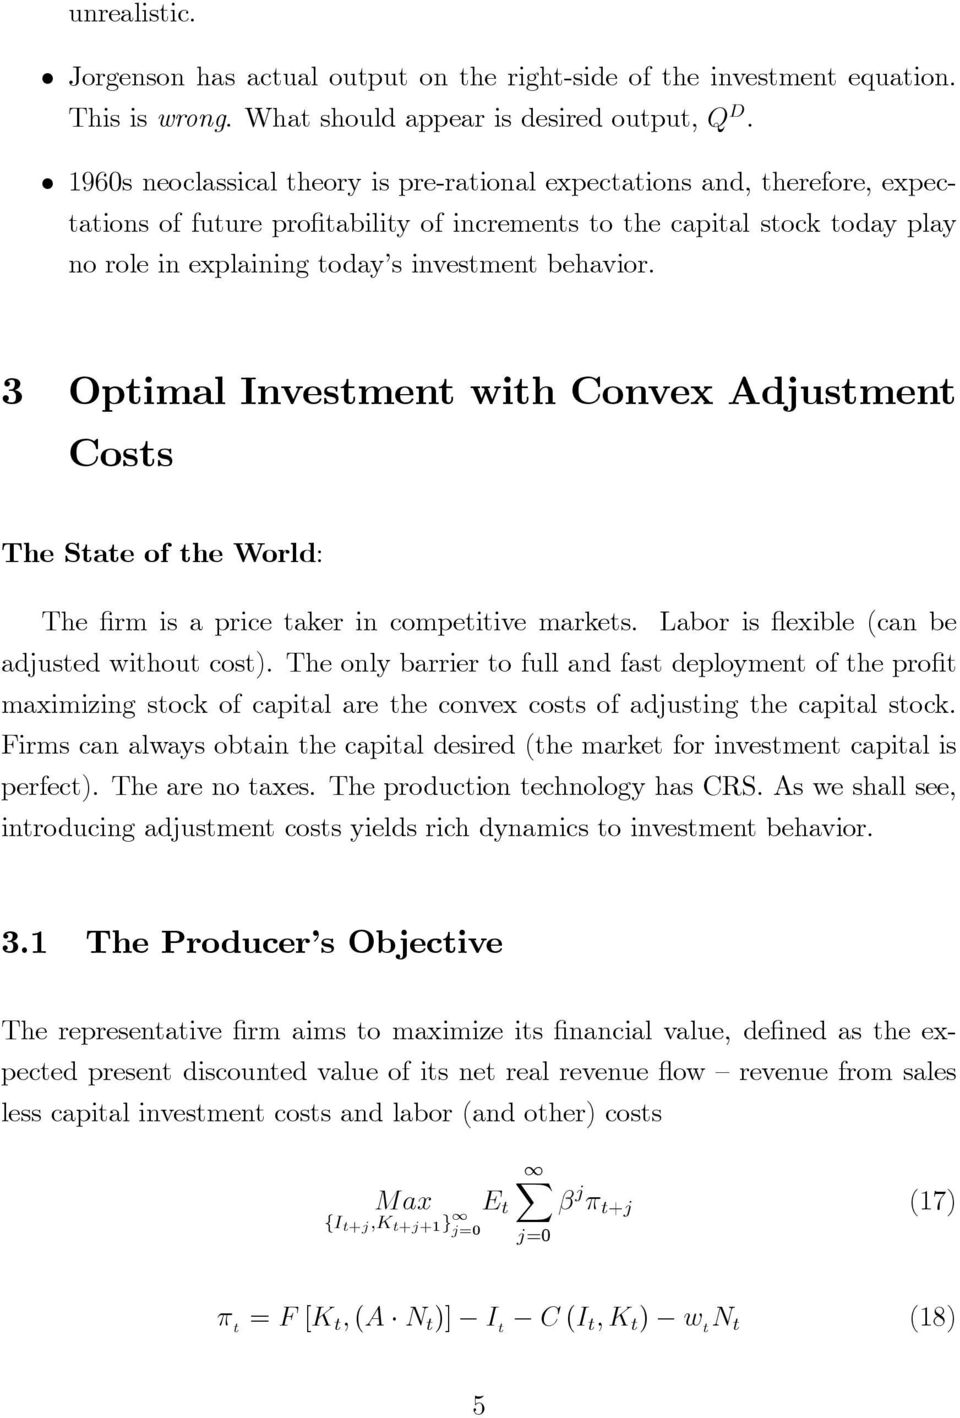 behavior. 3 Optimal Investment with Convex Adjustment Costs The State of the World: The rm is a price taker in competitive markets. Labor is exible (can be adjusted without cost).